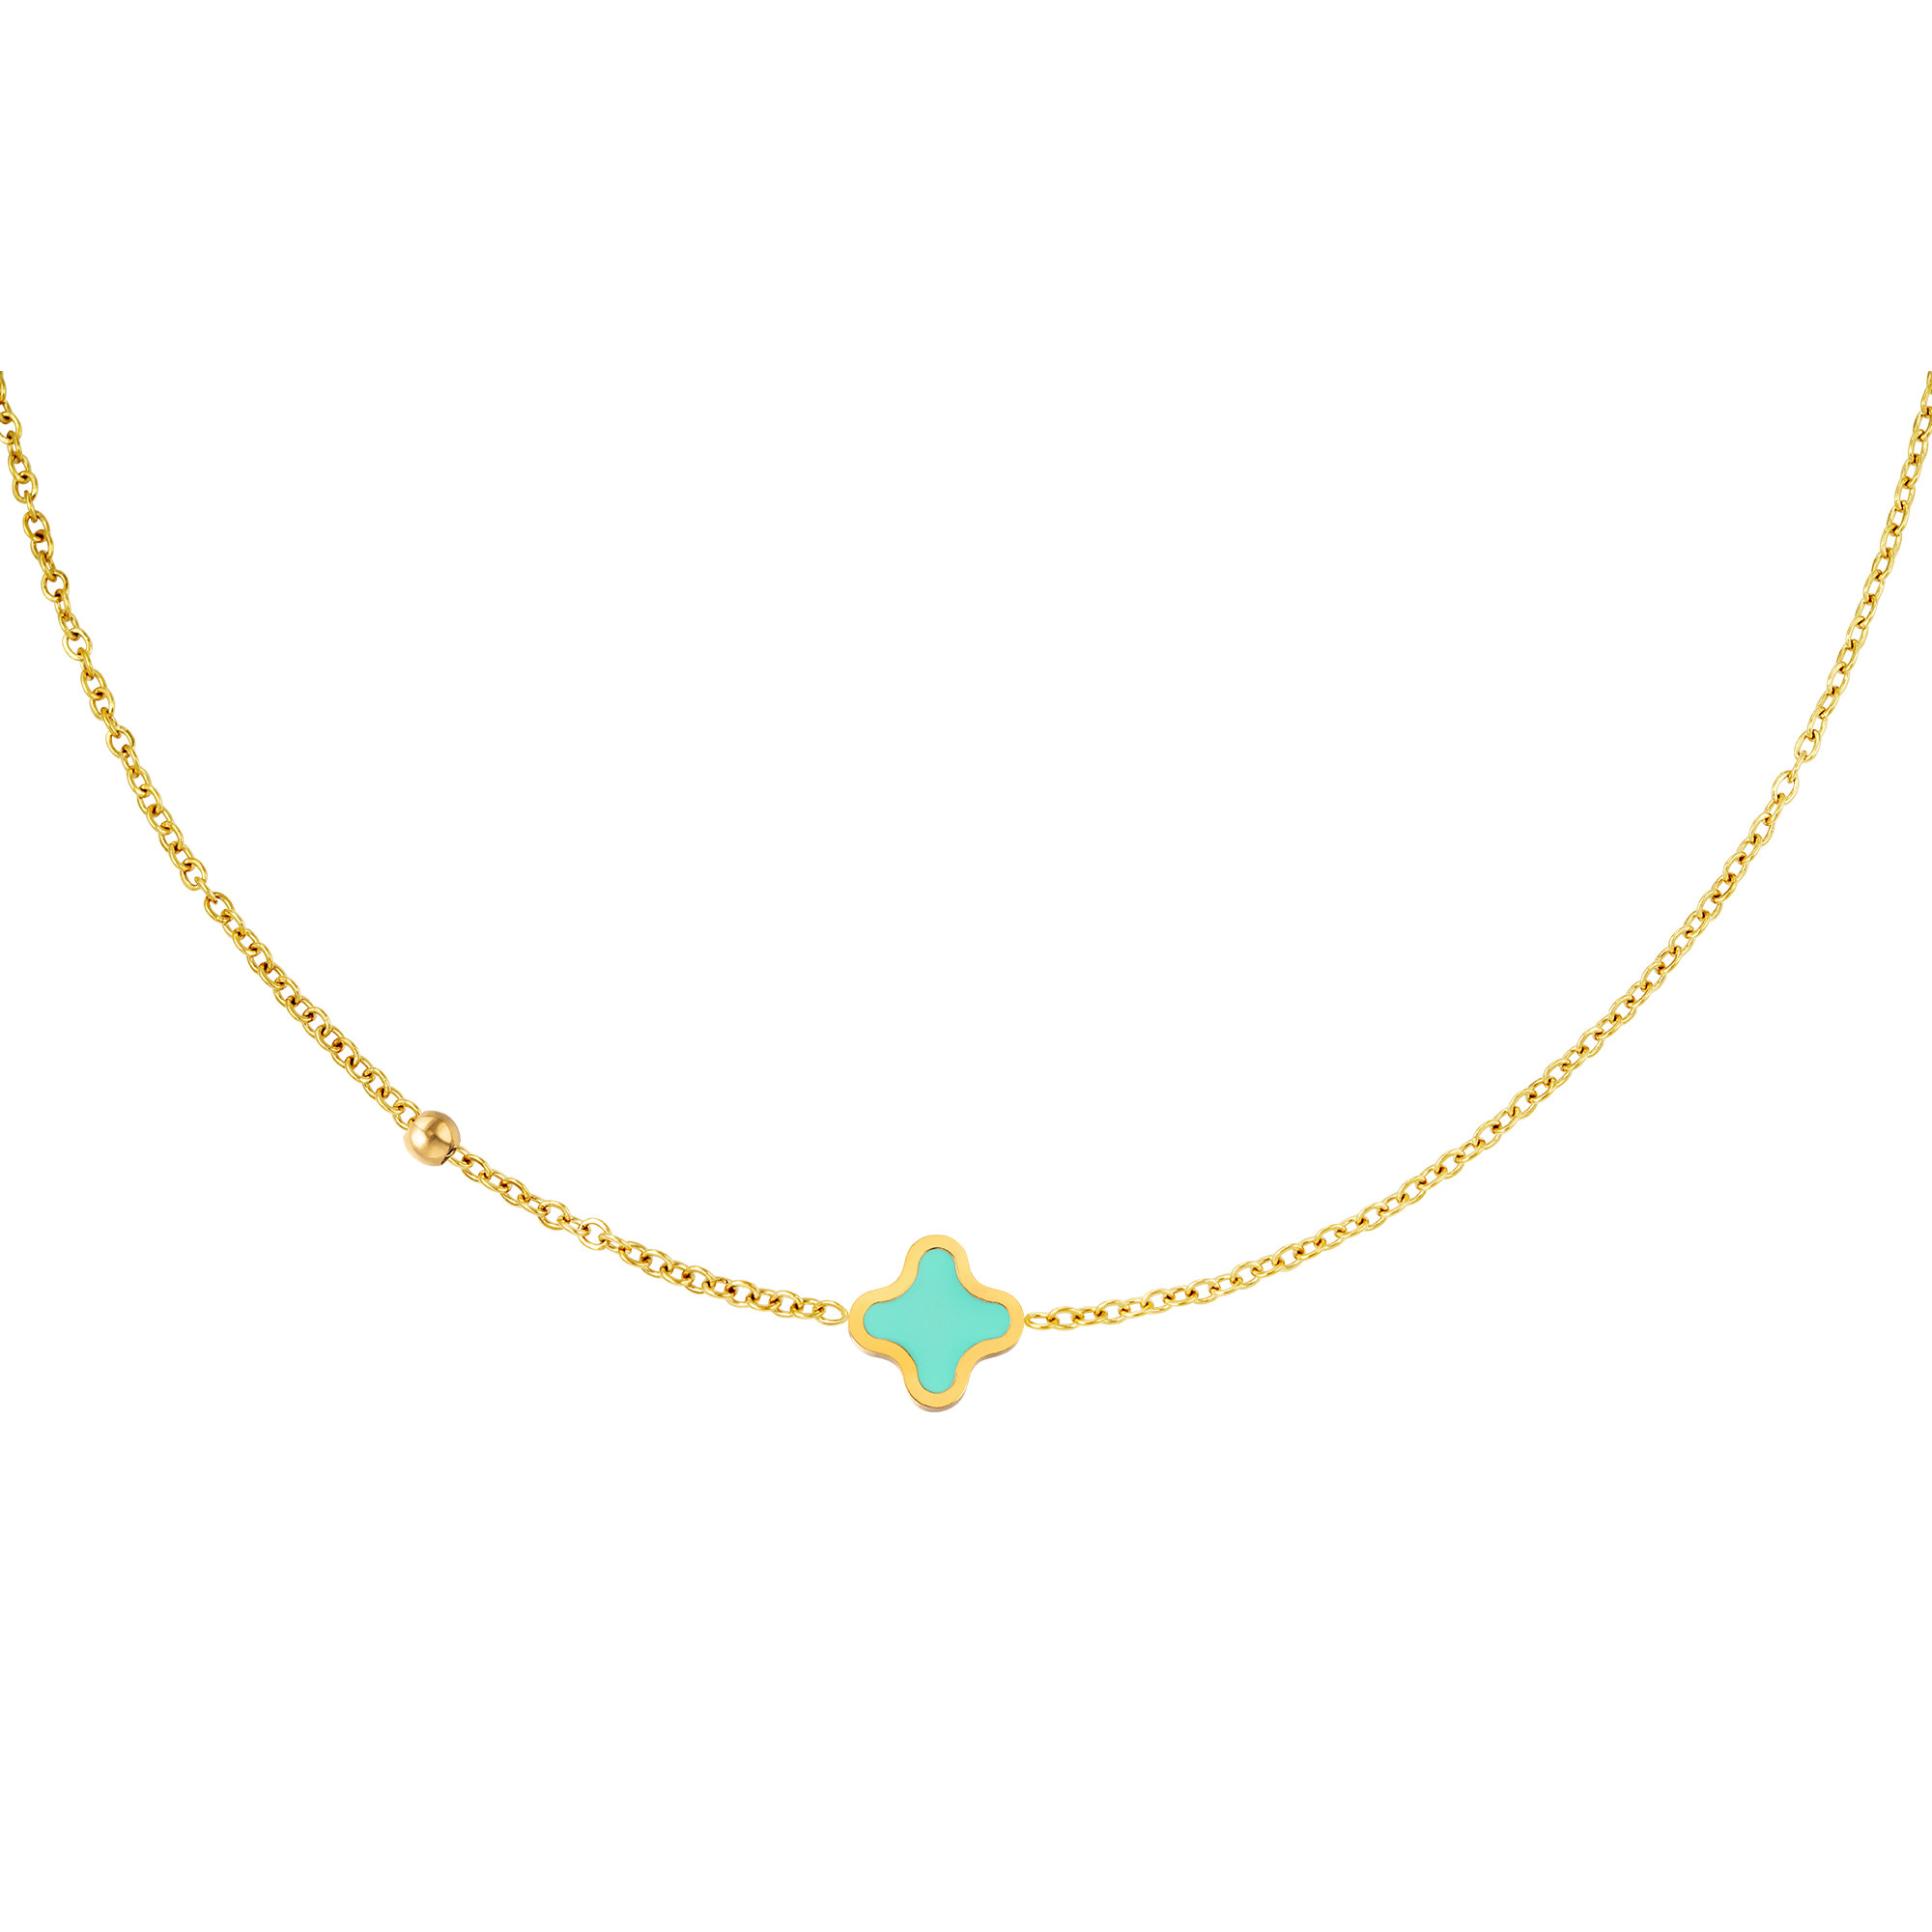 With love Necklace good luck aqua gold